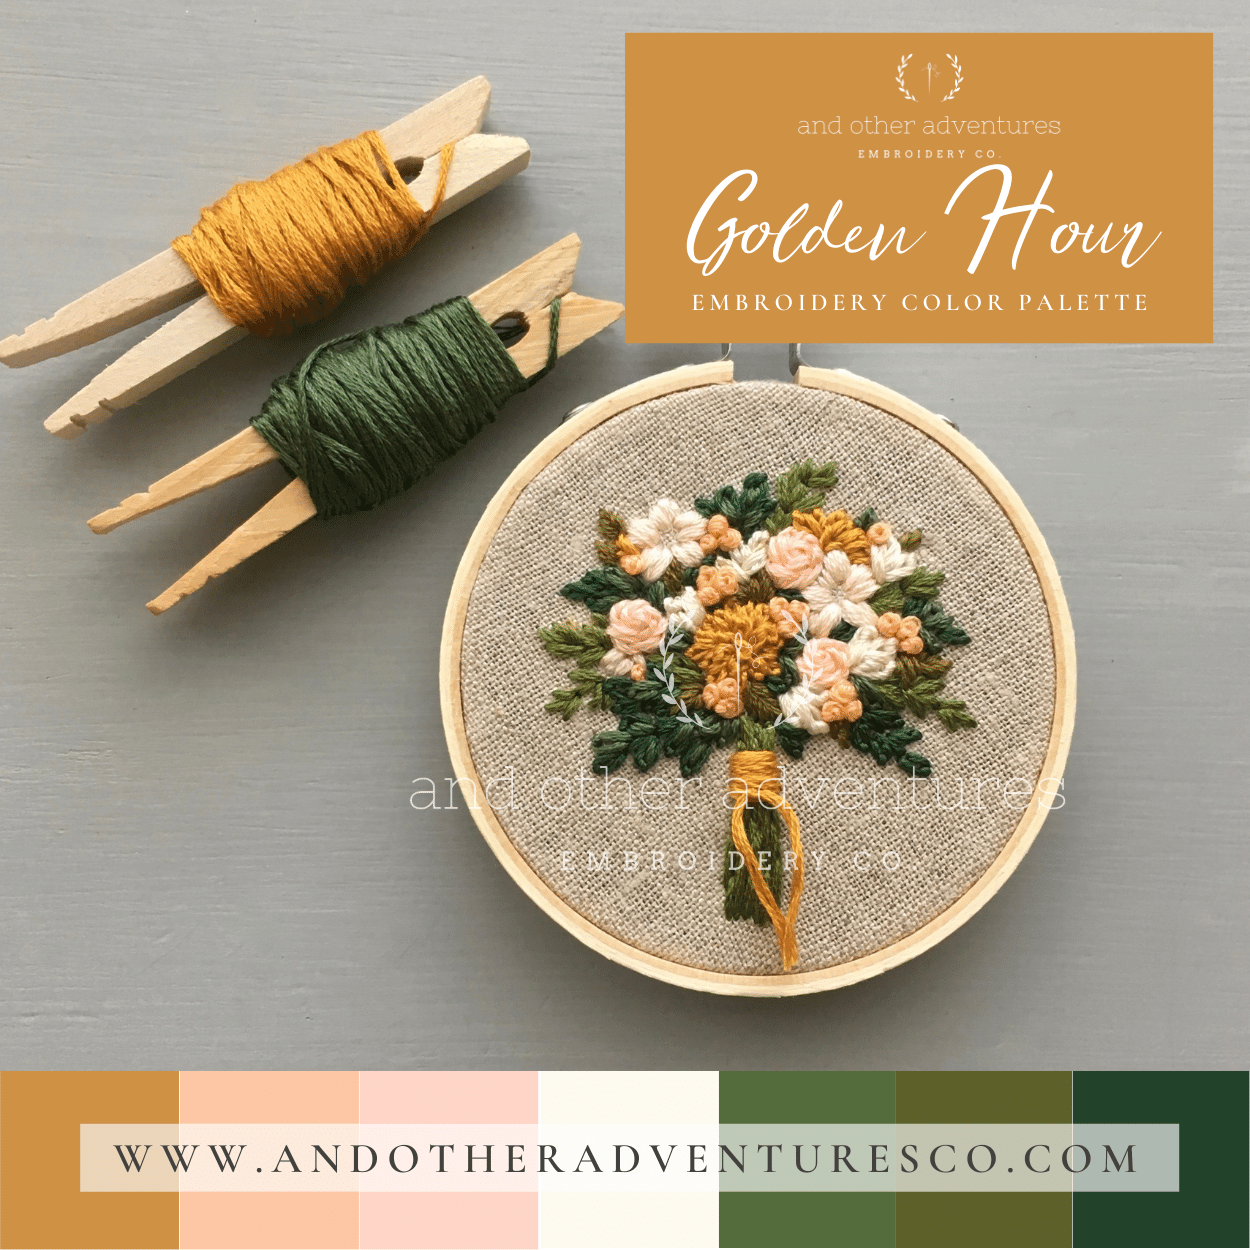 Golden Hour Hand Embroidery Color Palette by And Other Adventures Embroidery Co